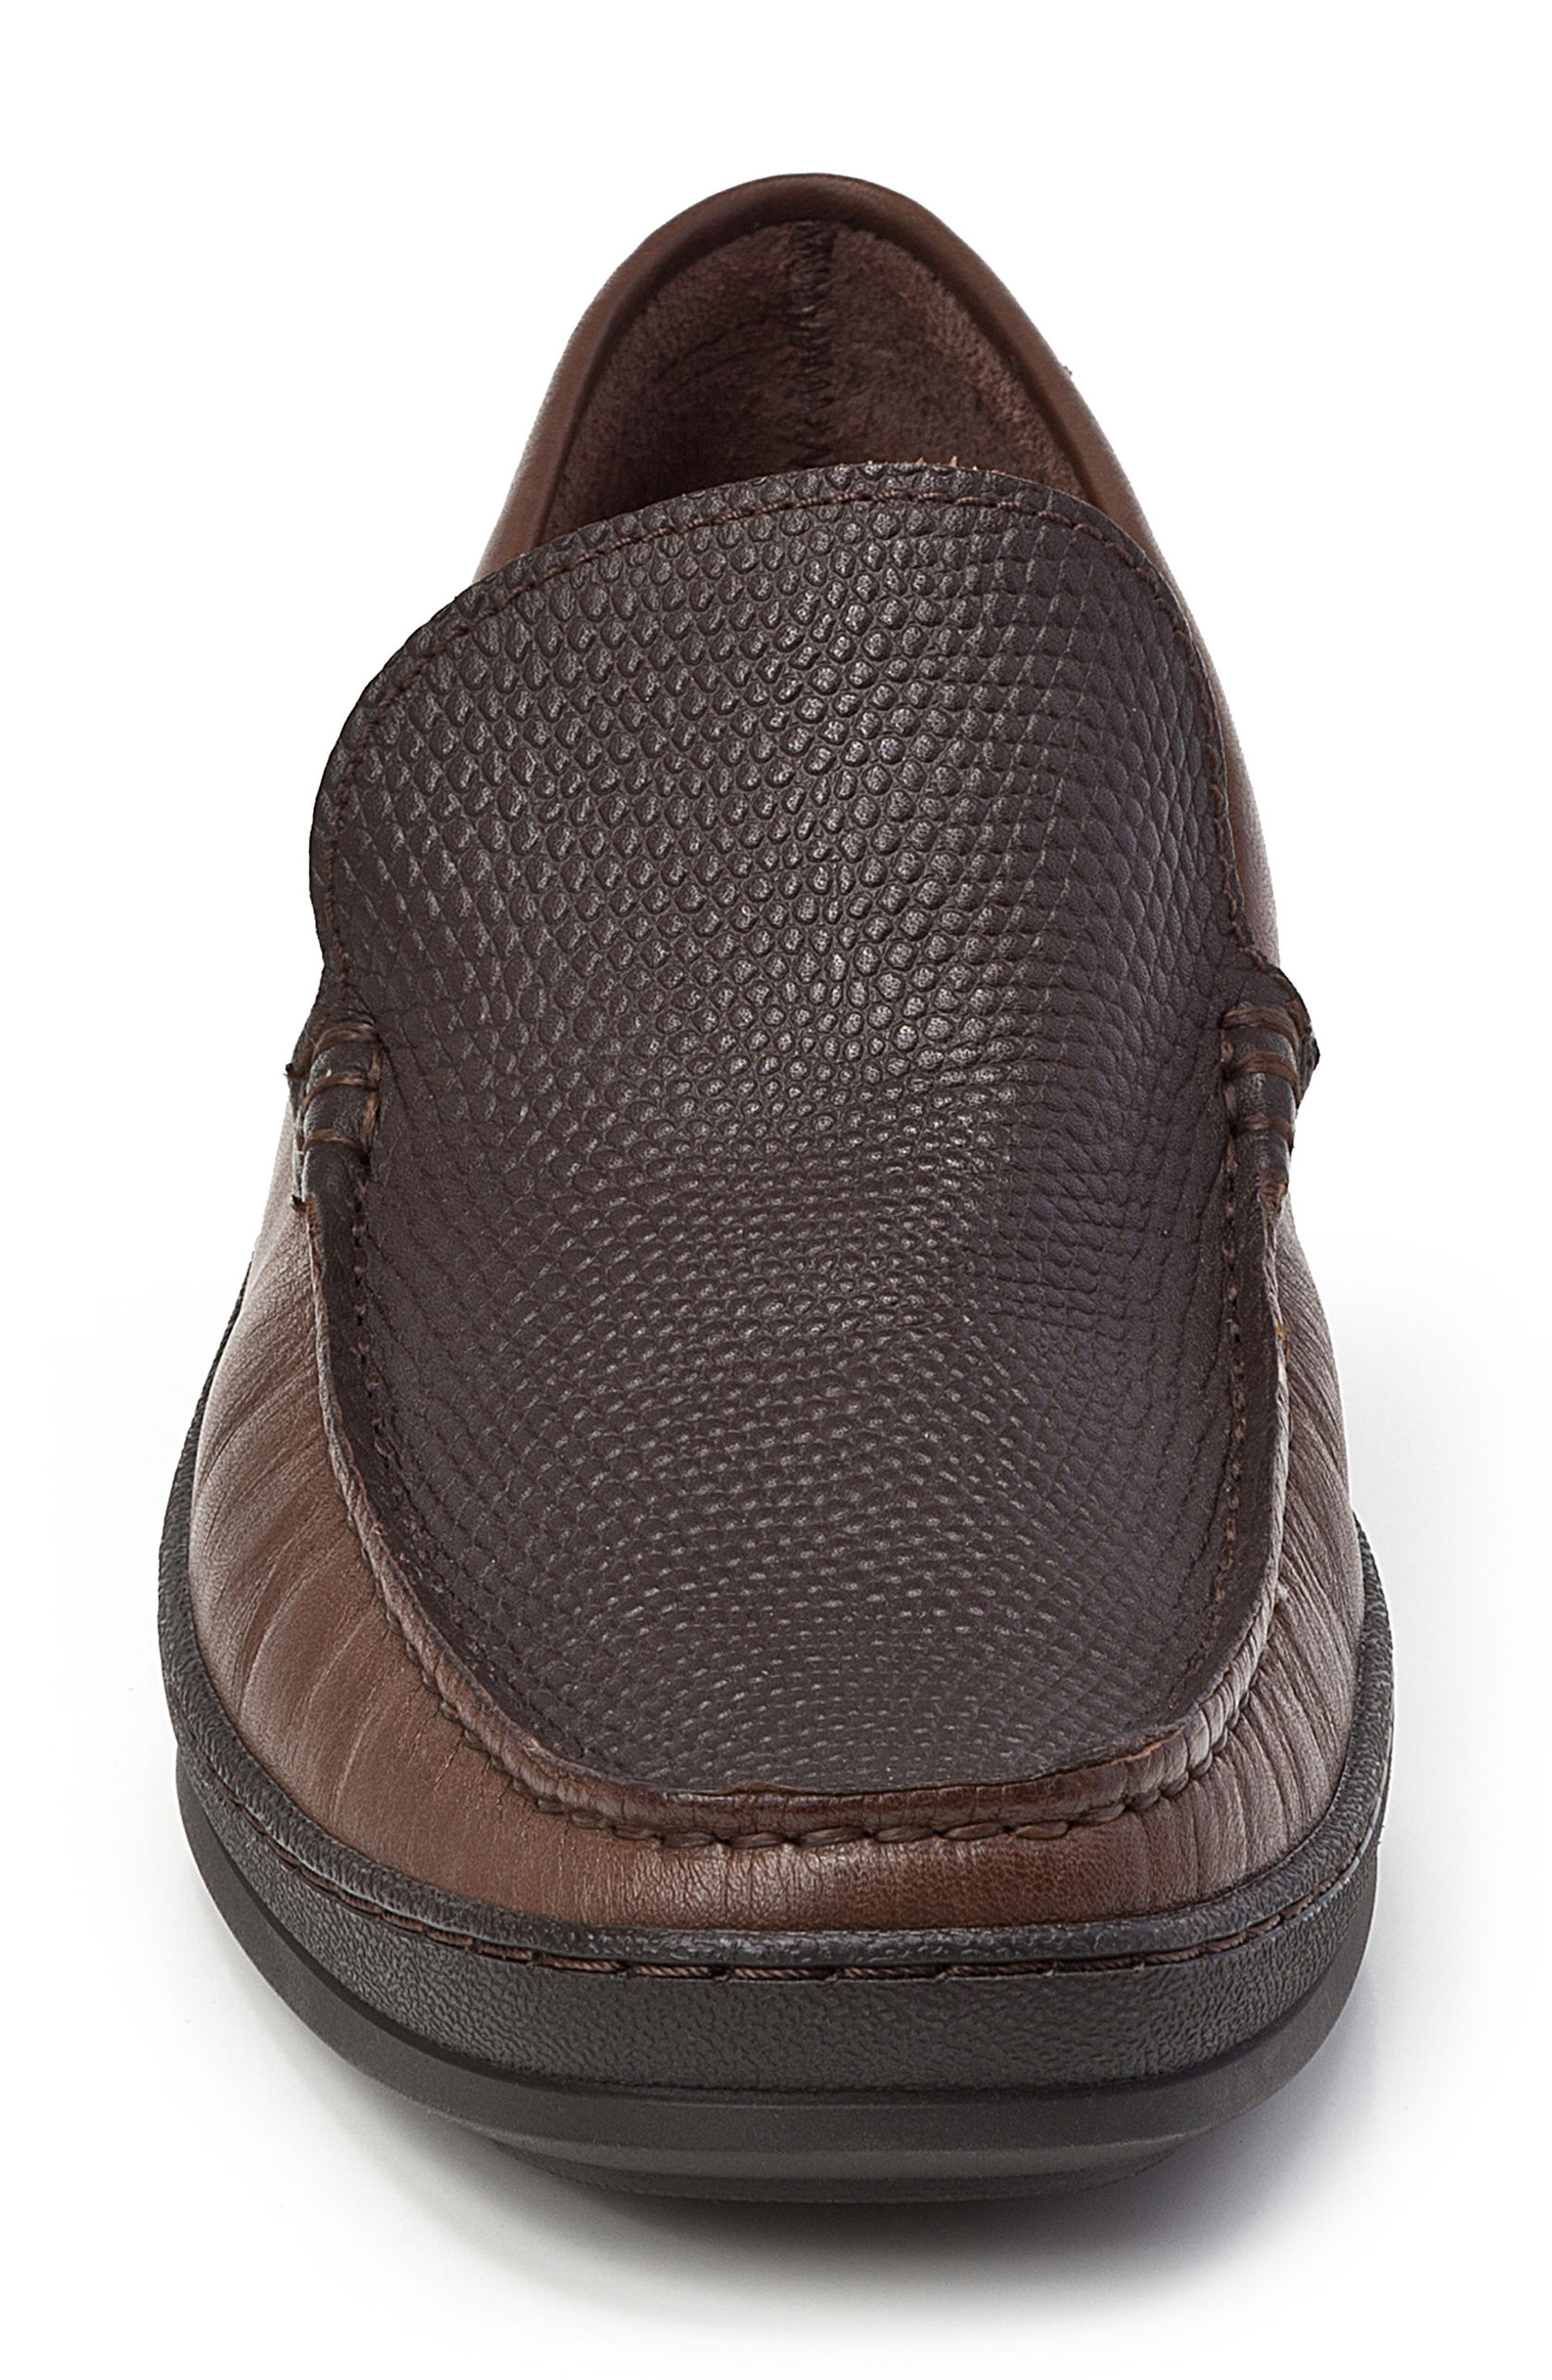 Torre Pebble Embossed Loafer,                             Alternate thumbnail 4, color,                             200